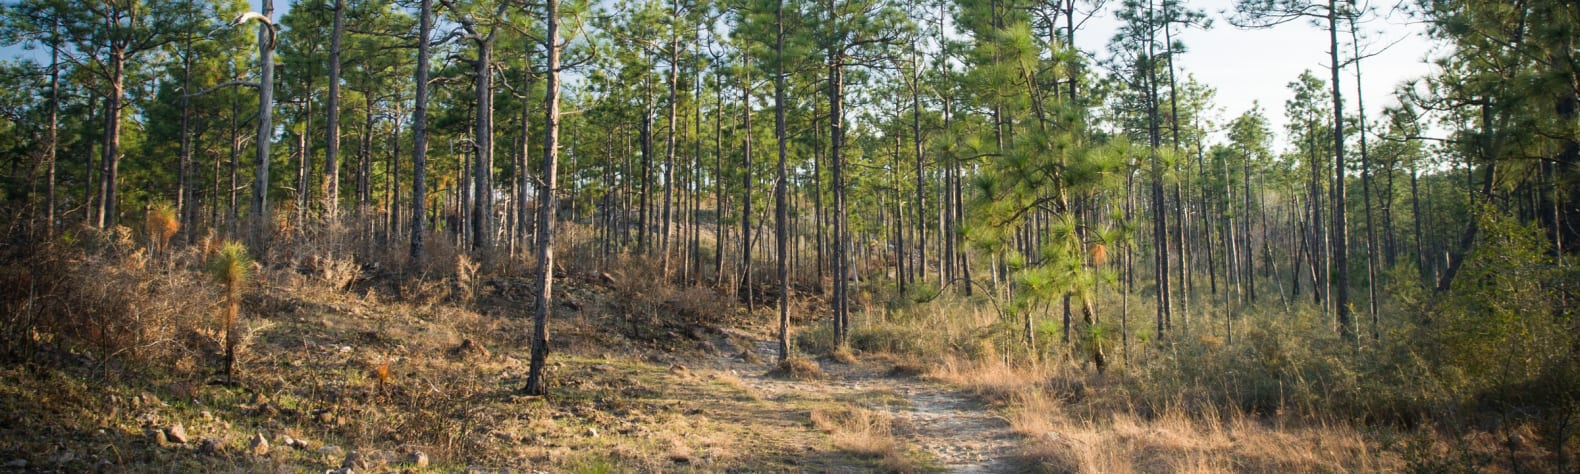 Kisatchie National Forest Vehicle Use Map on